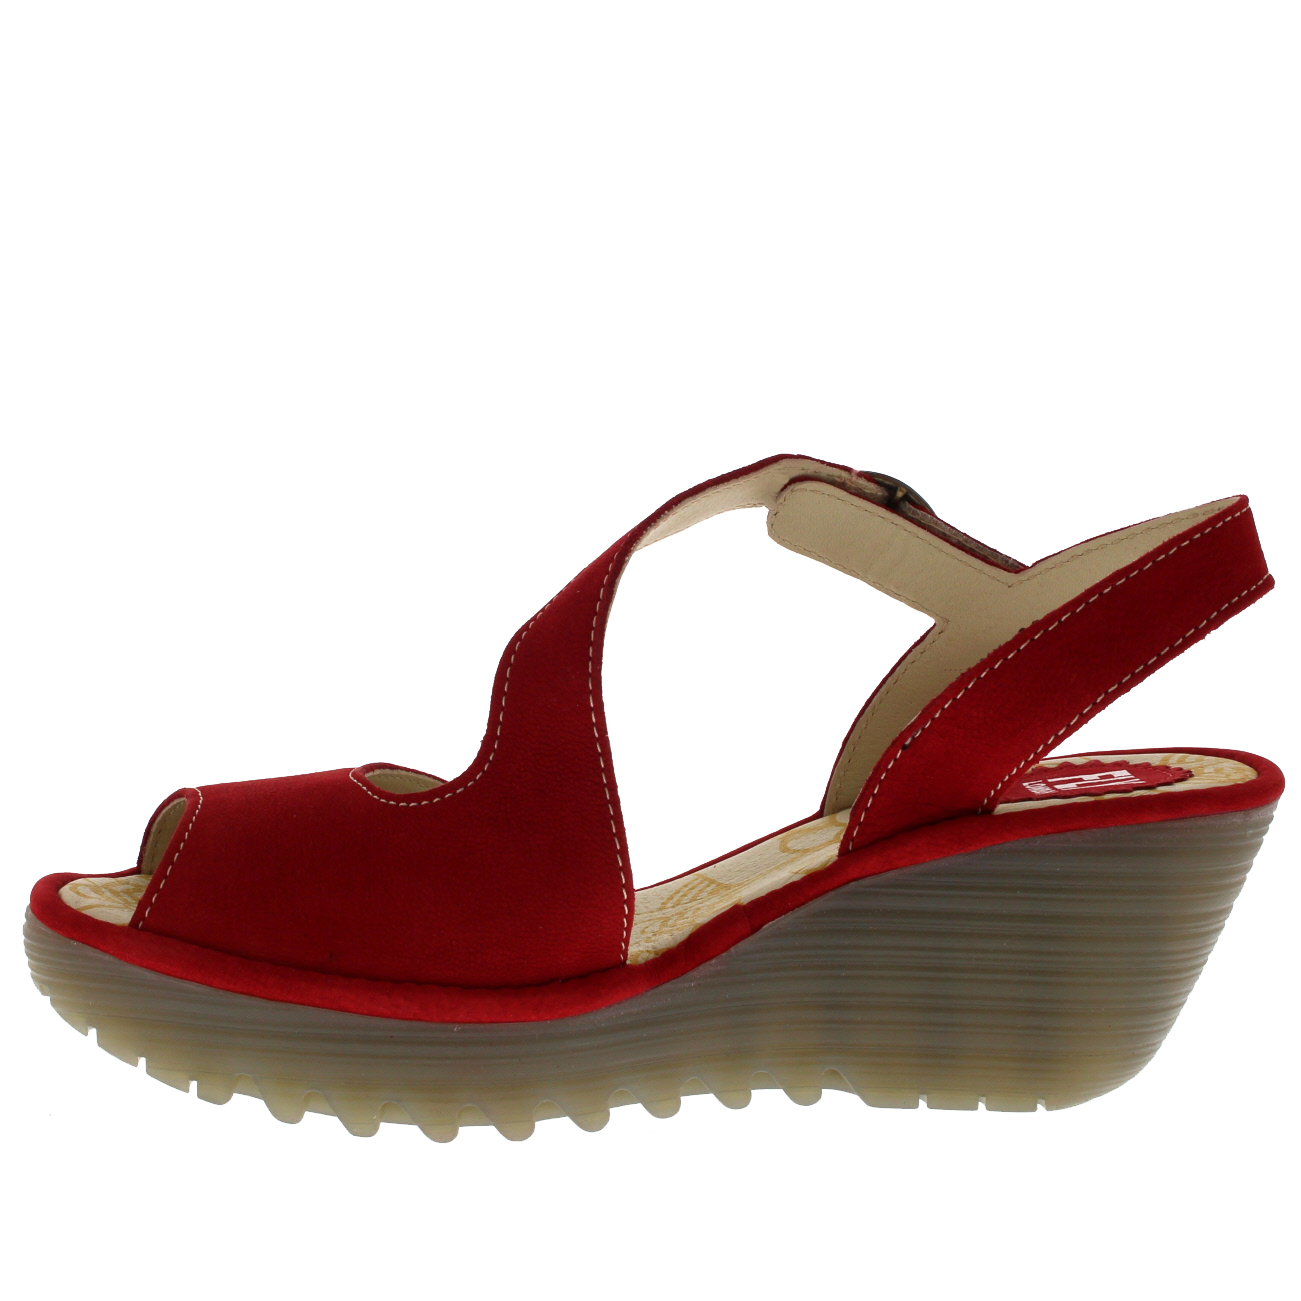 Womens-Fly-London-Yamp-Peep-Toe-Summer-Cut-Out-Buckle-Wedge-Heel-Sandals-US-5-12 thumbnail 15